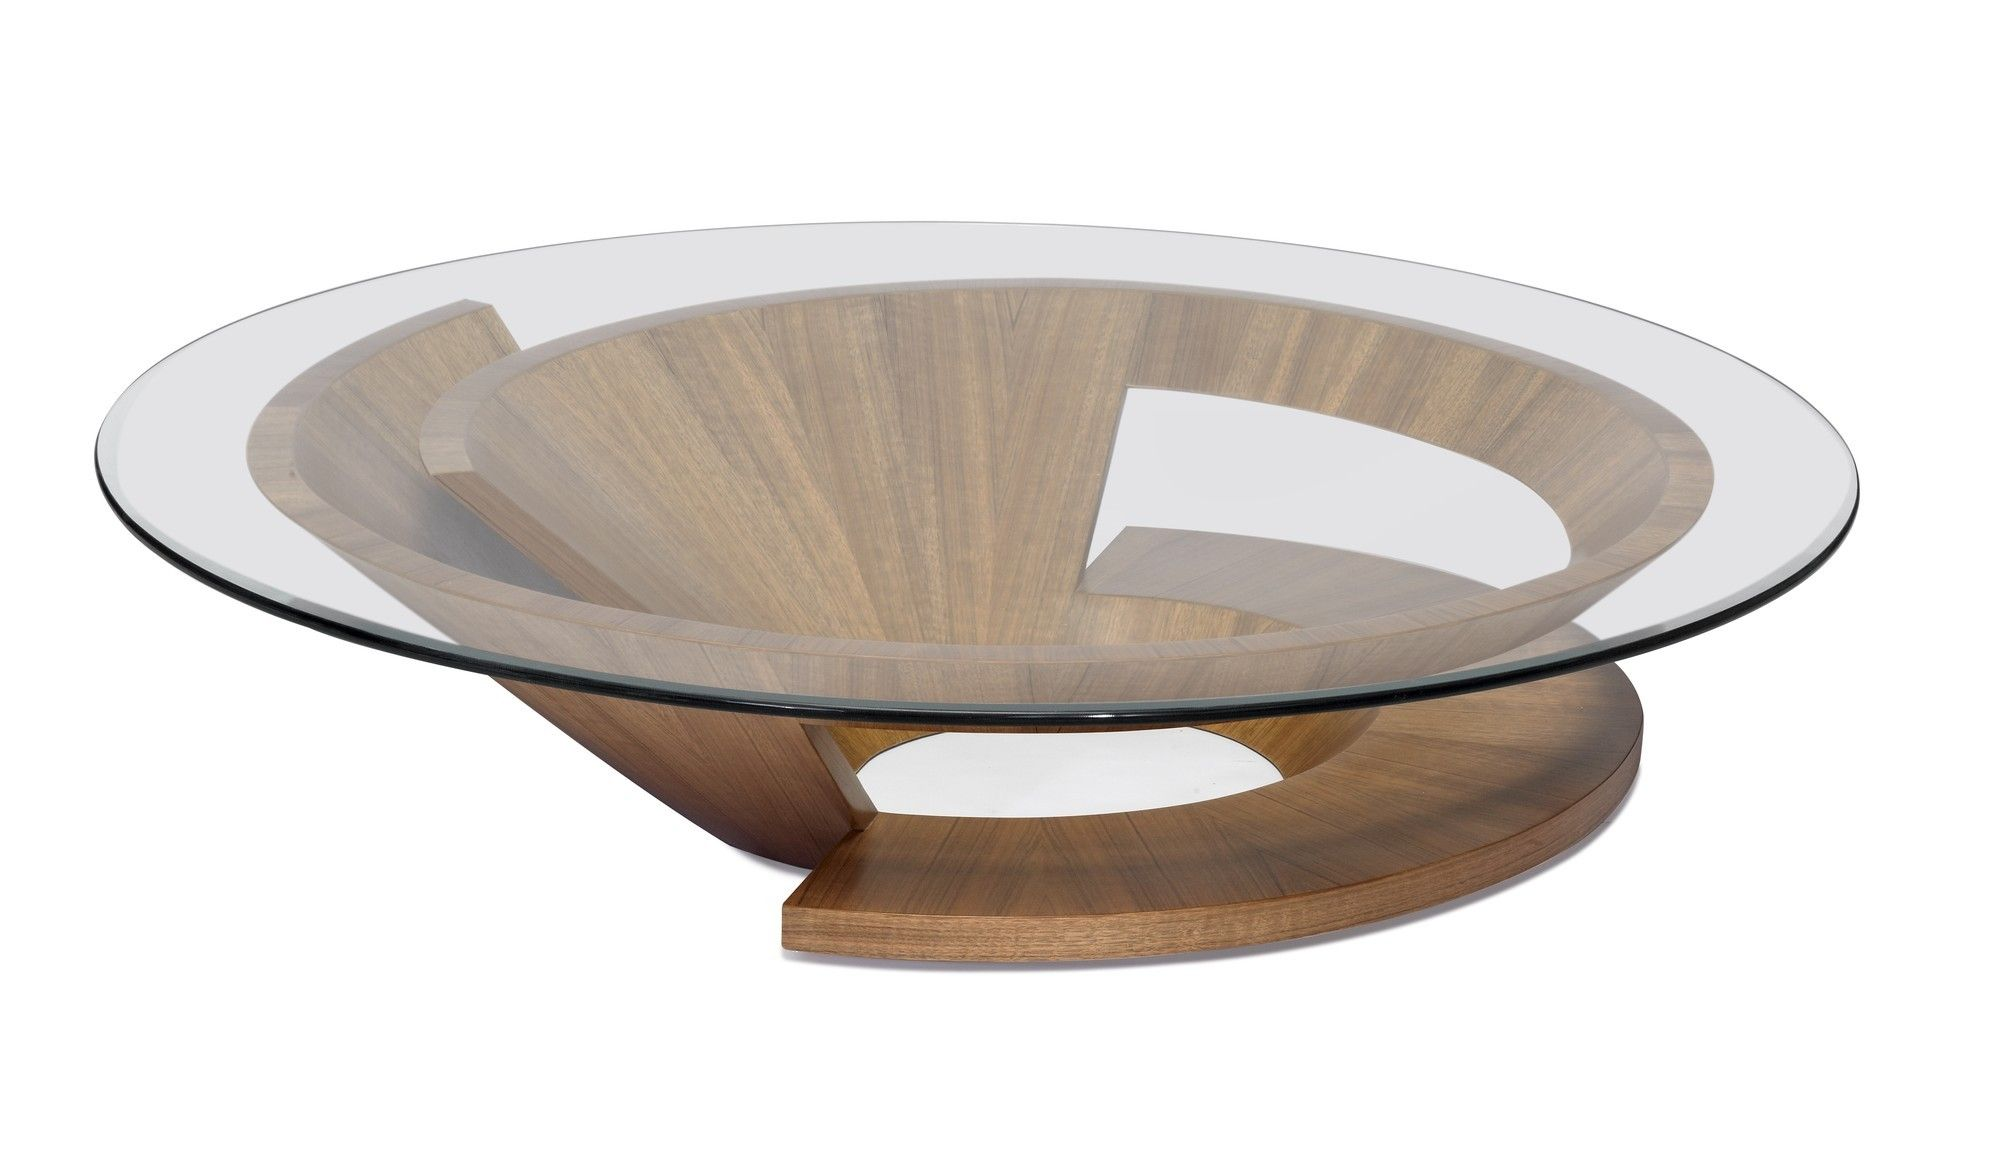 Round Glass Top Coffee Table Round Glass Top Coffee Table With Oak Base The Dream Home